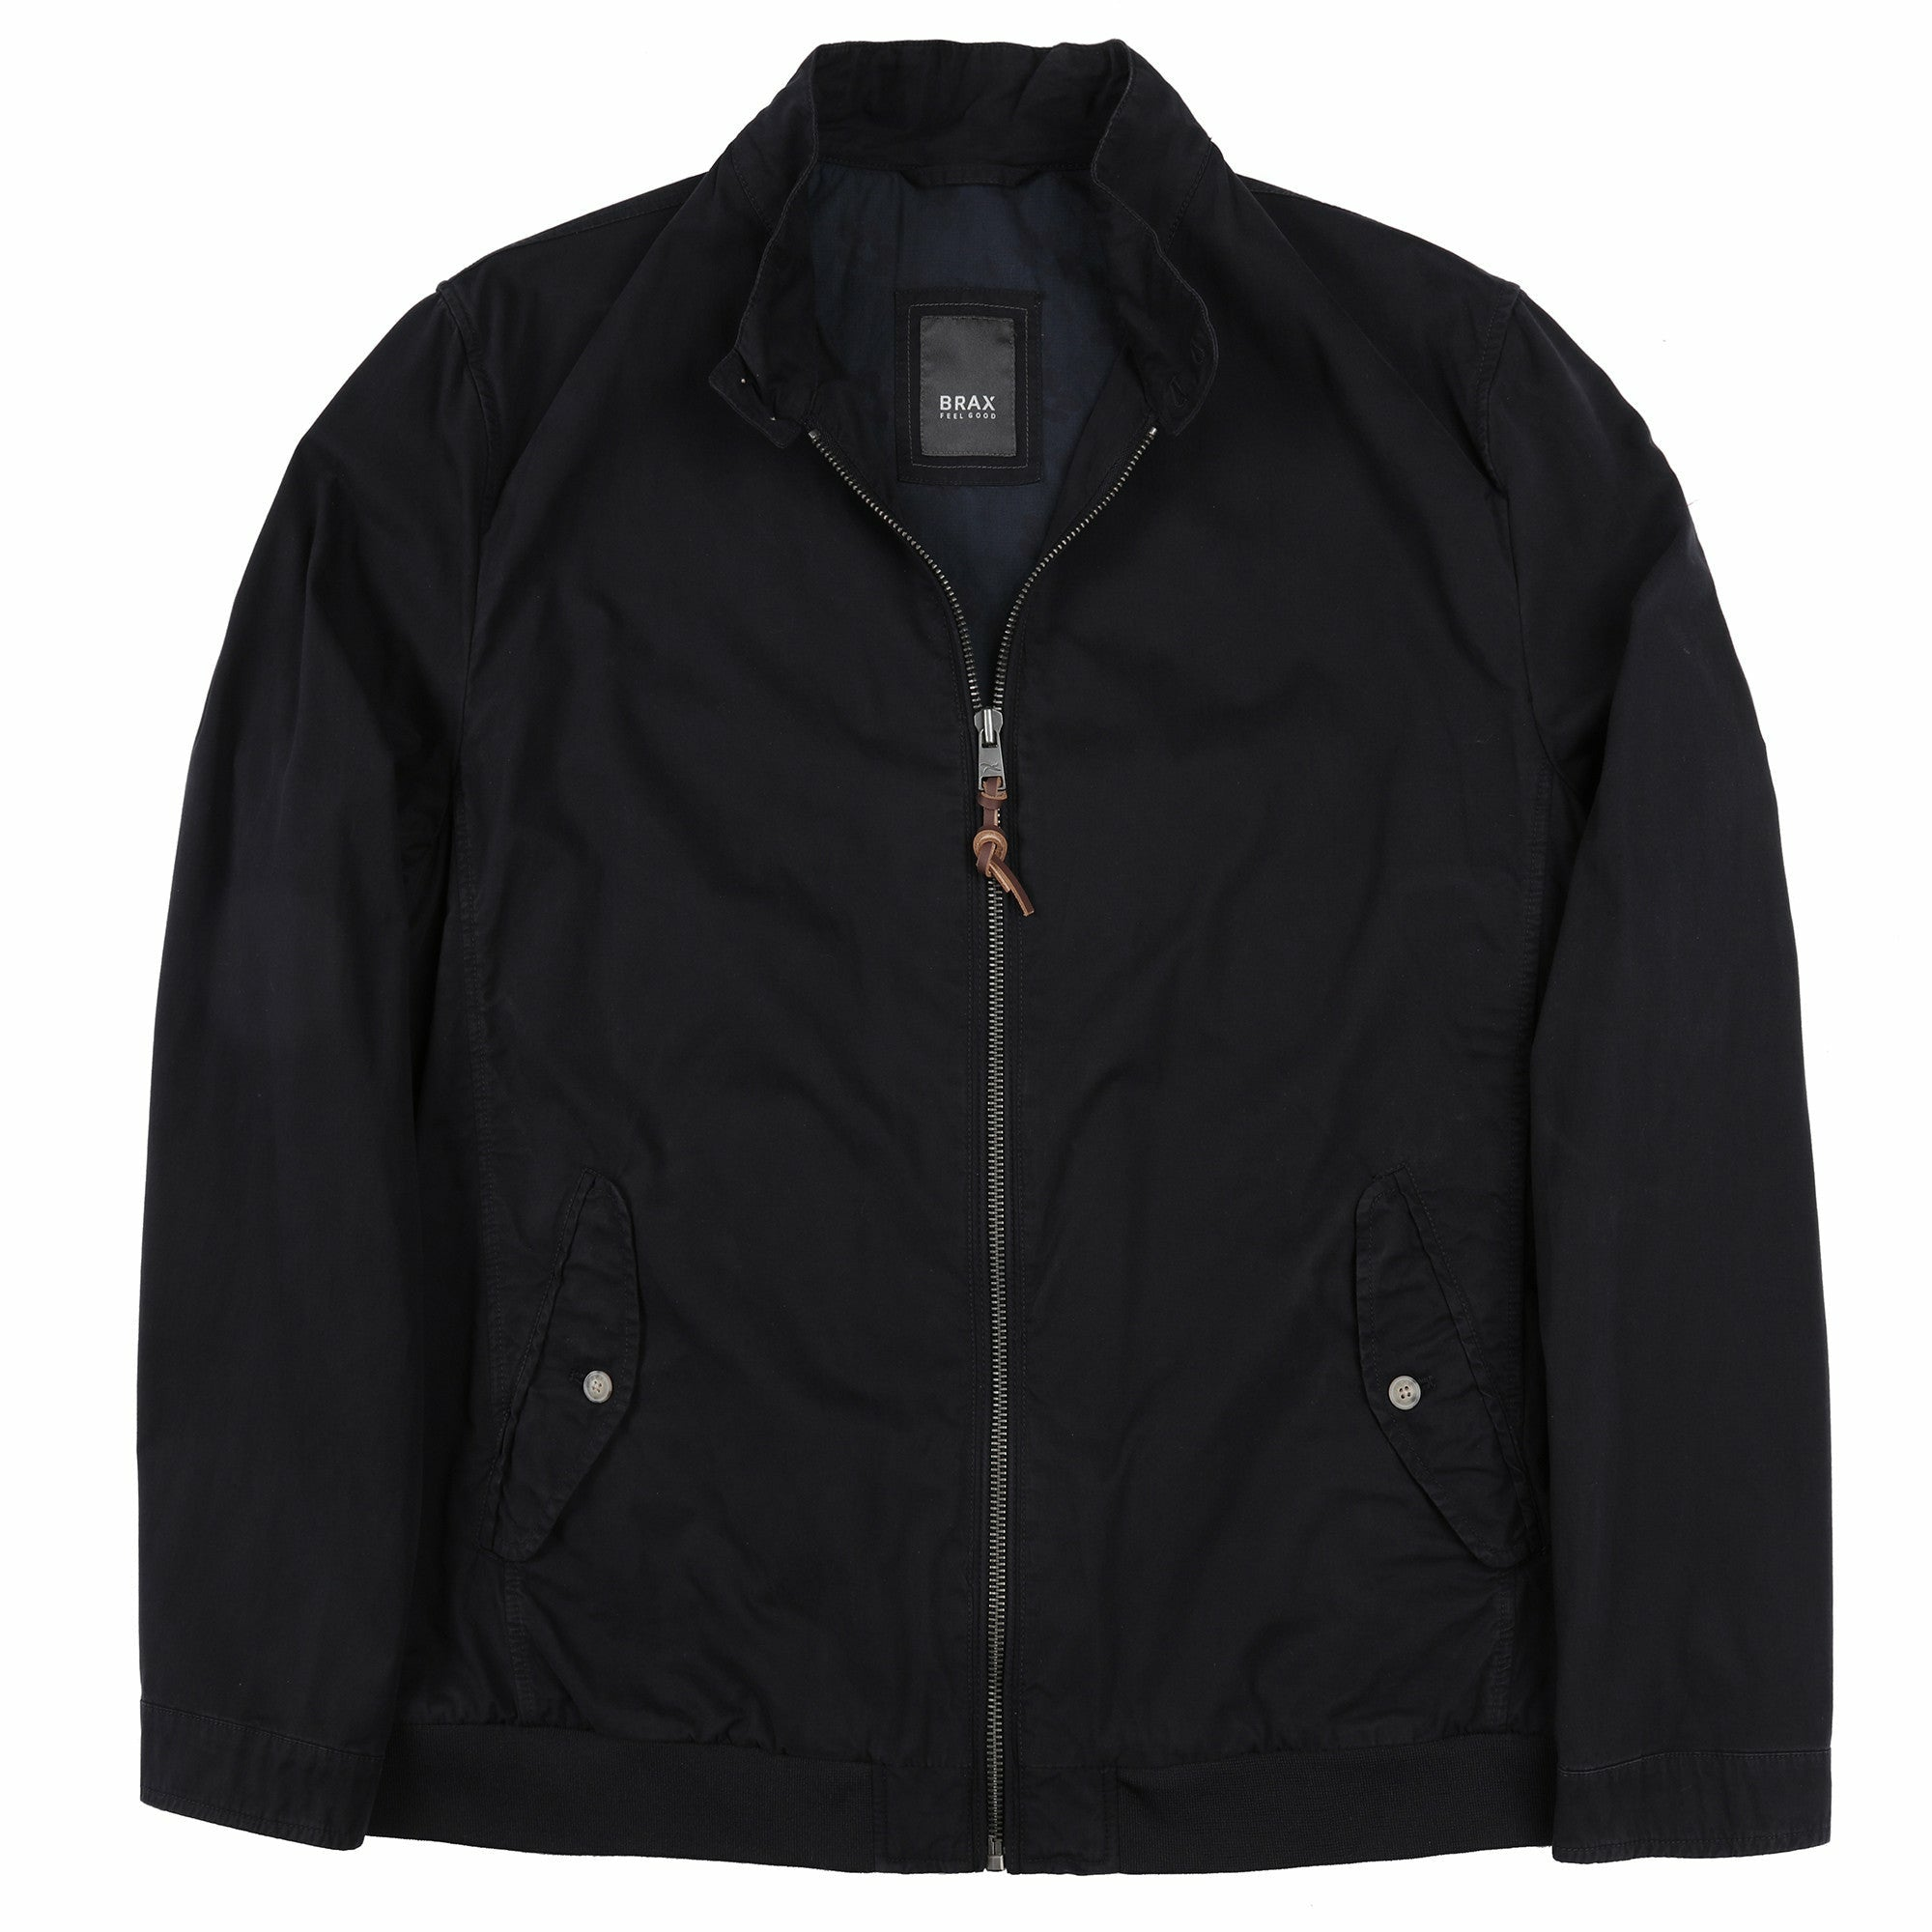 incredible prices size 40 best All Brax Outerwear / Knits - Big Mens Clothing by Ron Bennett